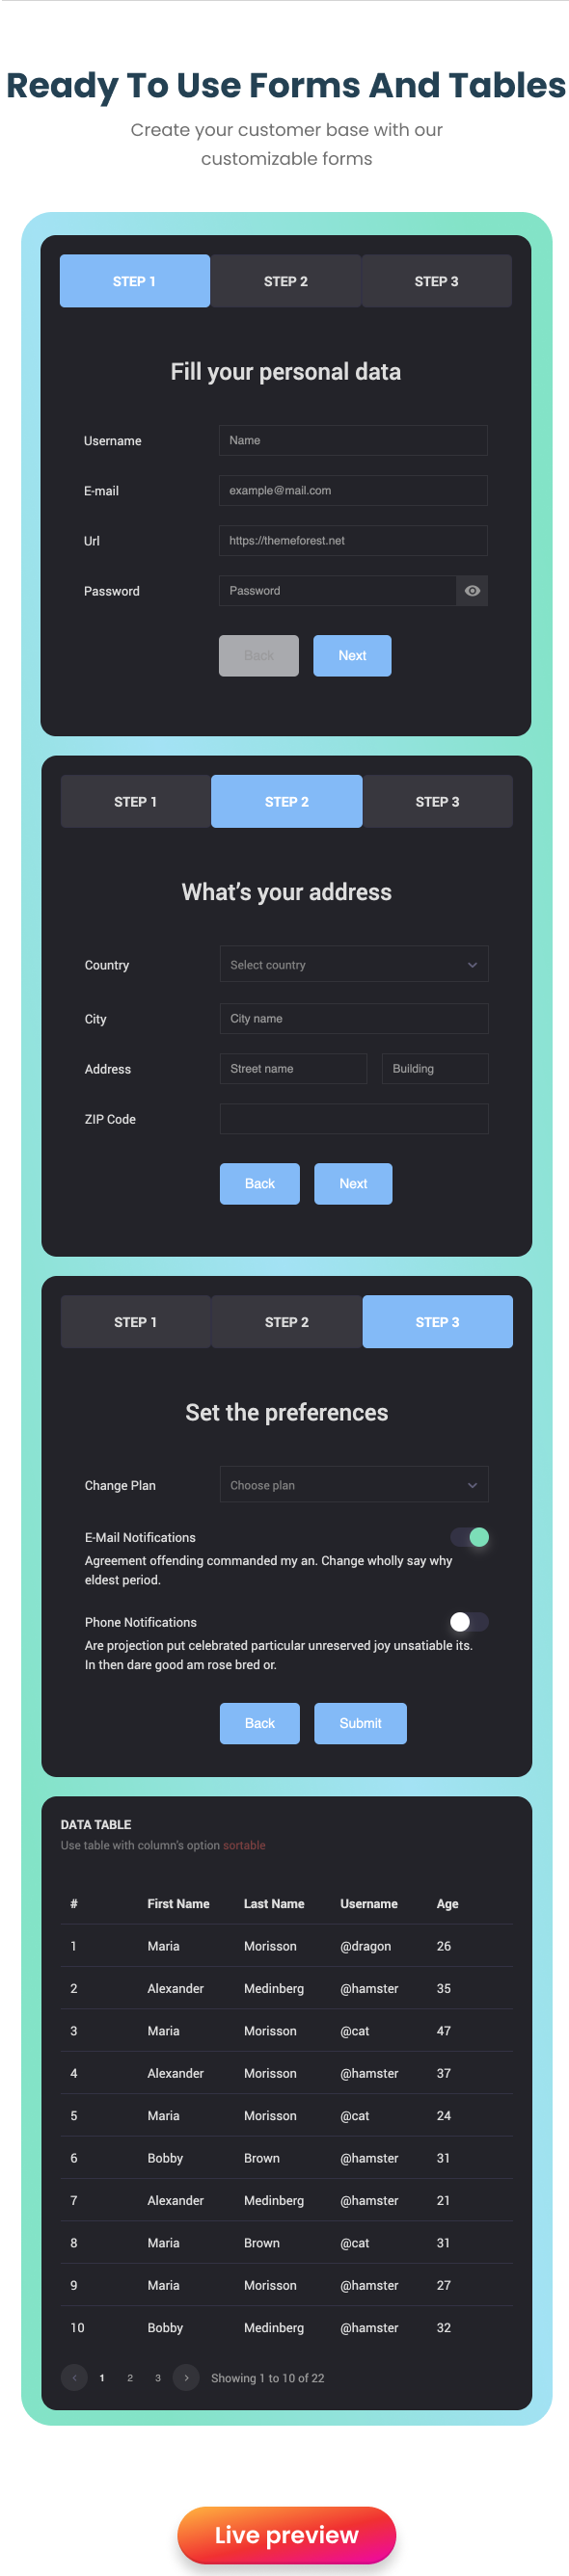 EasyDev — React Redux BS4 Developer Friendly Admin Template + Seed Project - 13